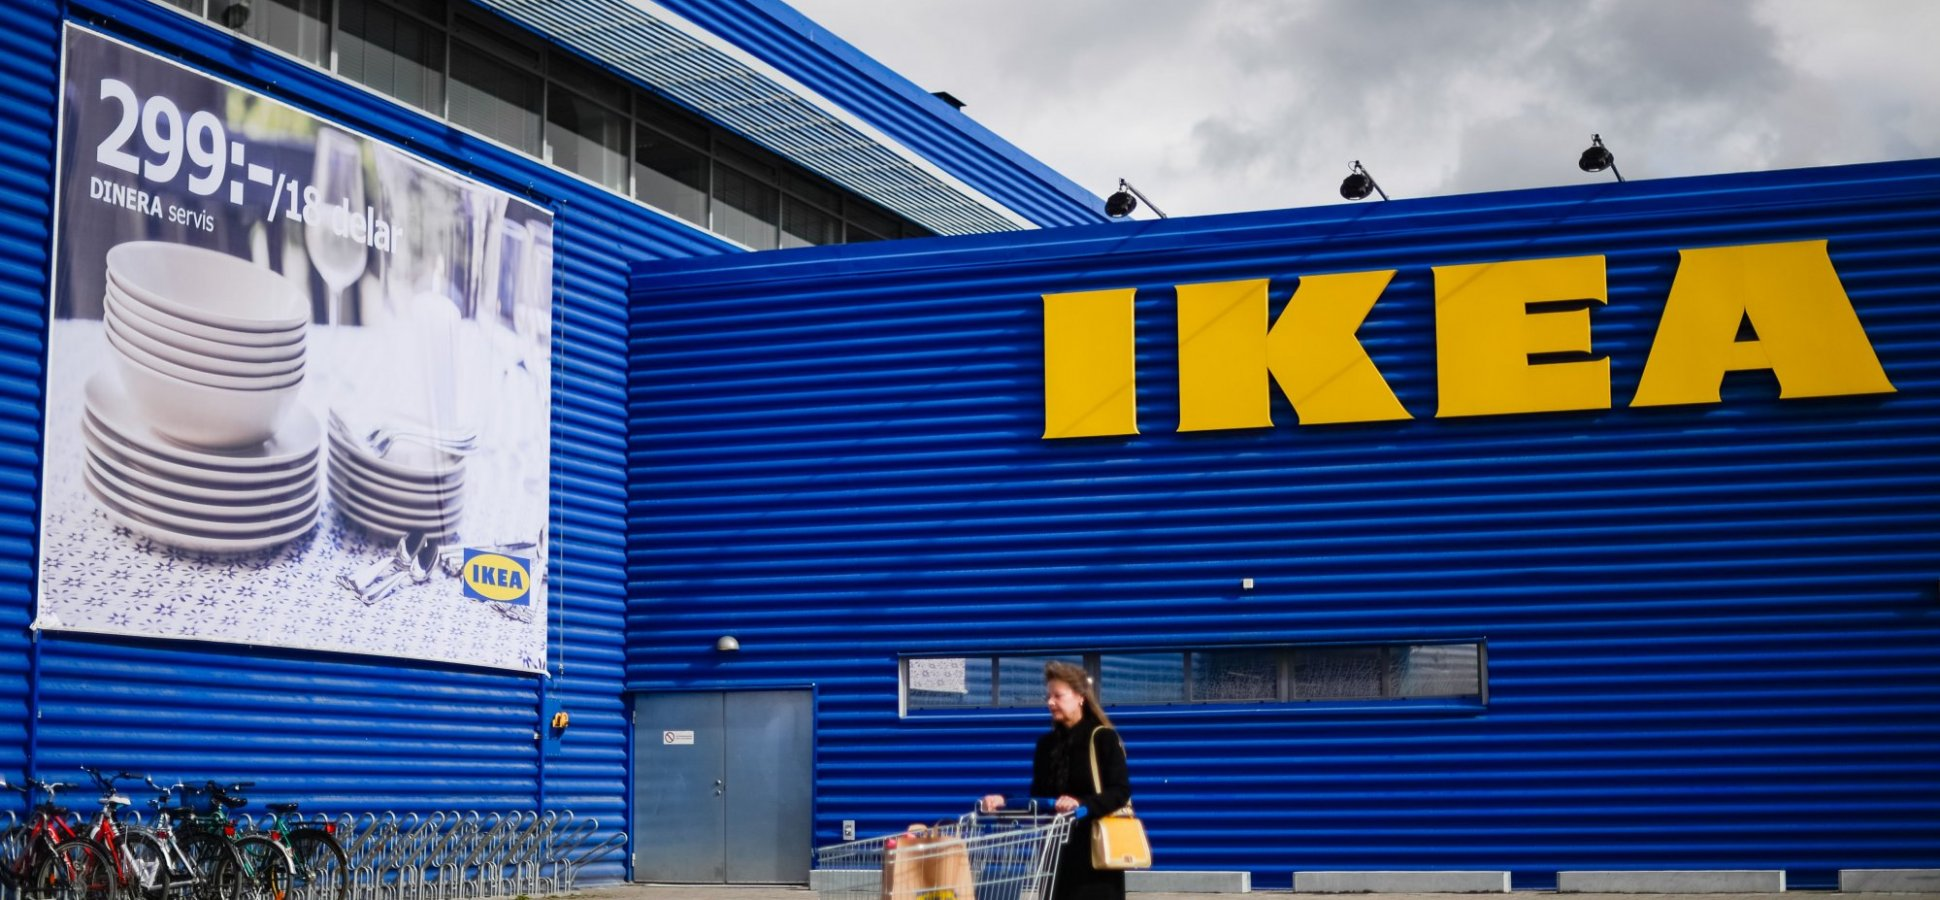 Amazon Forced IKEA to Change Everything Almost. IKEA's Genius Plan Will Help Any Company Fight Back